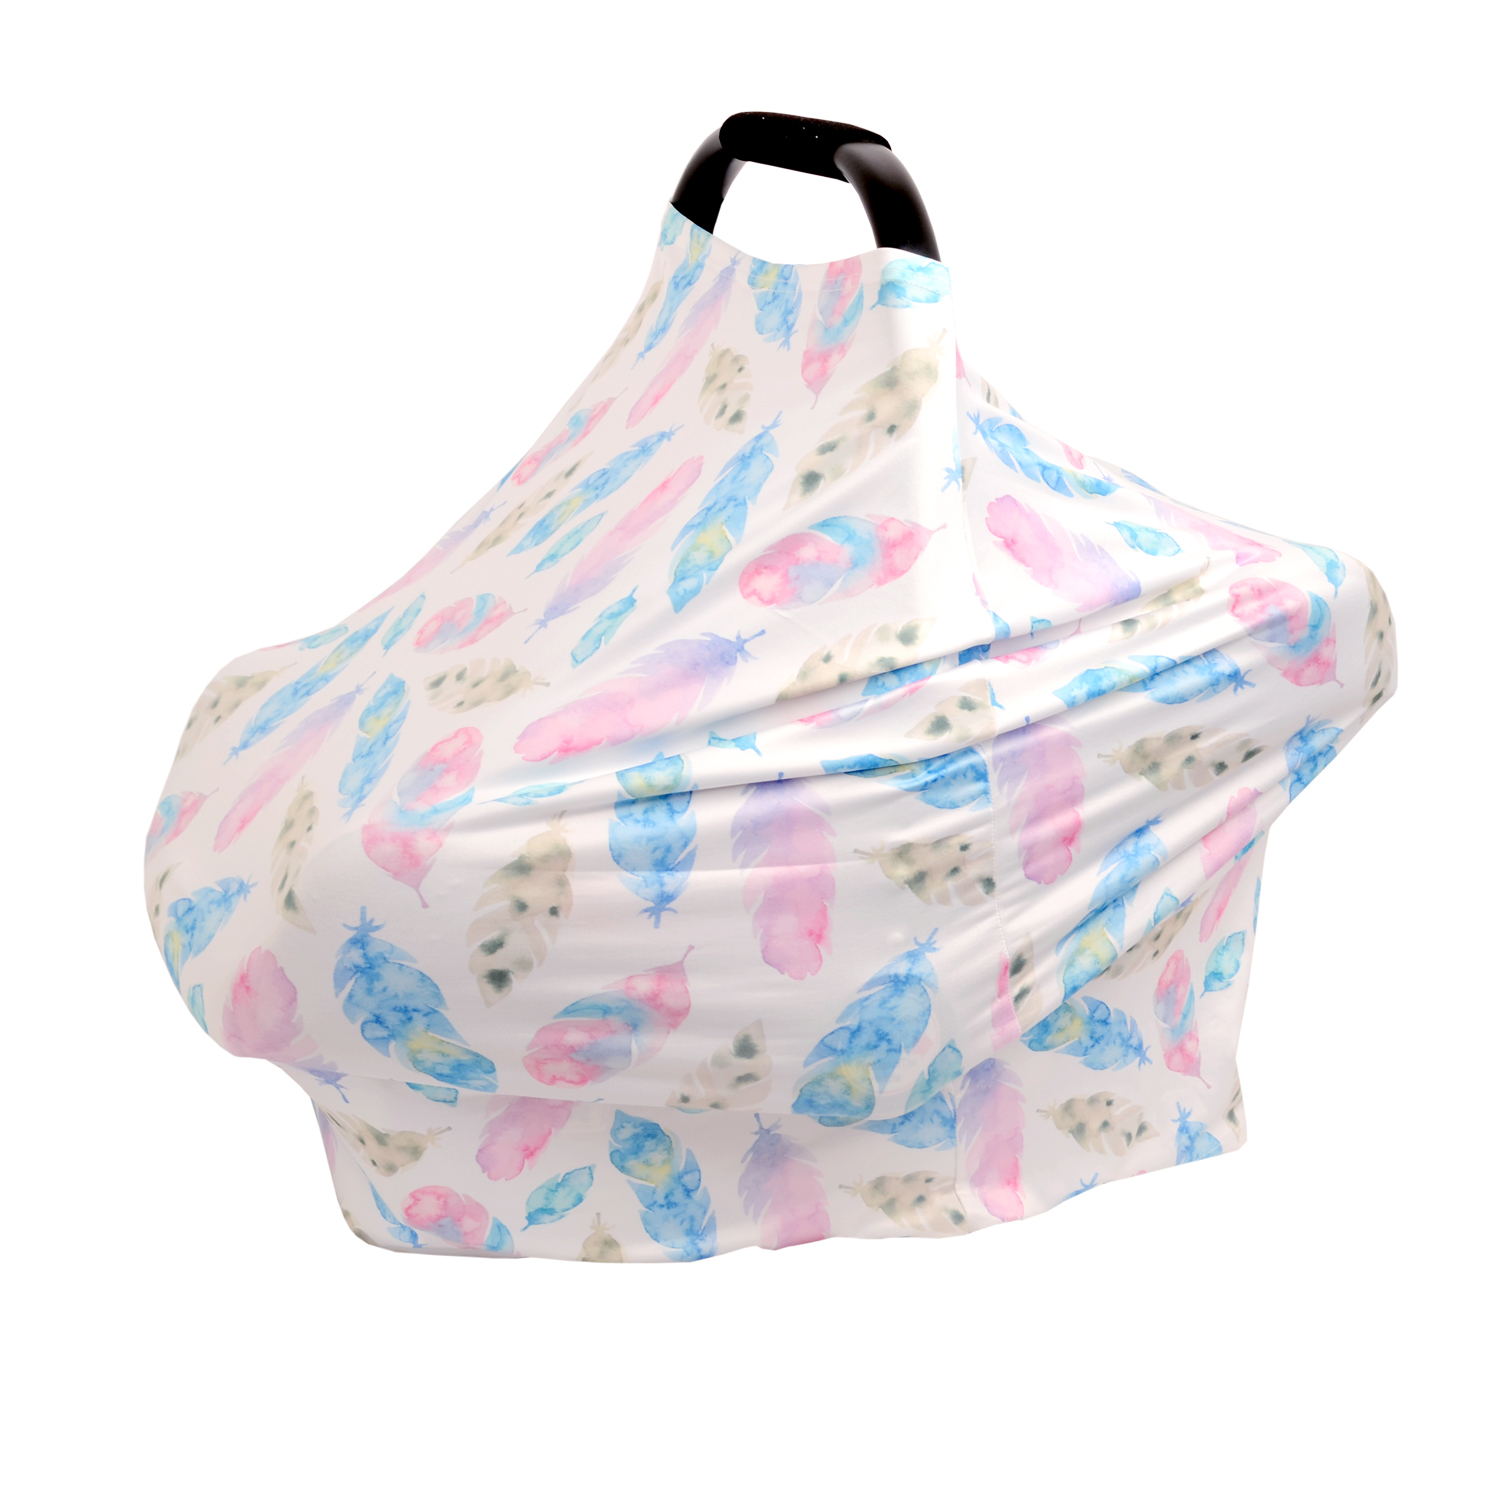 New Multi-Use Stretchy Infinity Scarf Baby Car Seat Cover Nursing Cover Breastfeeding Shopping Cart Cover High Chair Cover (#5)